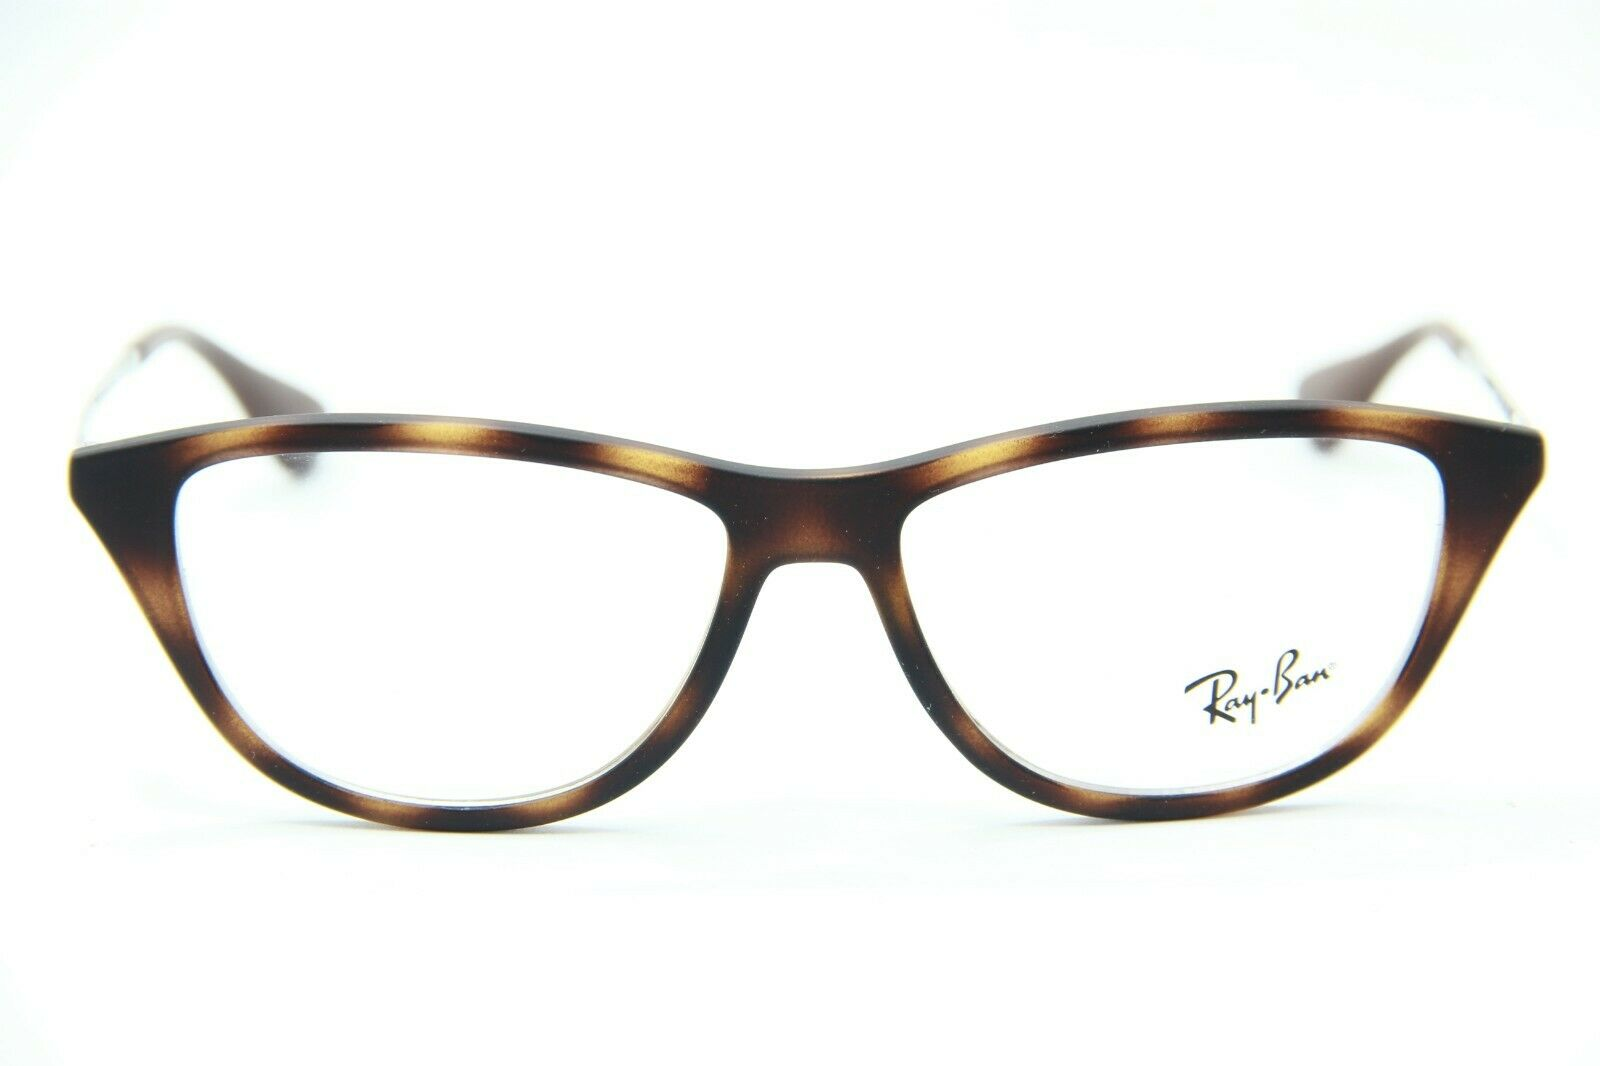 Ray Ban Eyeglasses RB7042 5365 Rx-ABLE